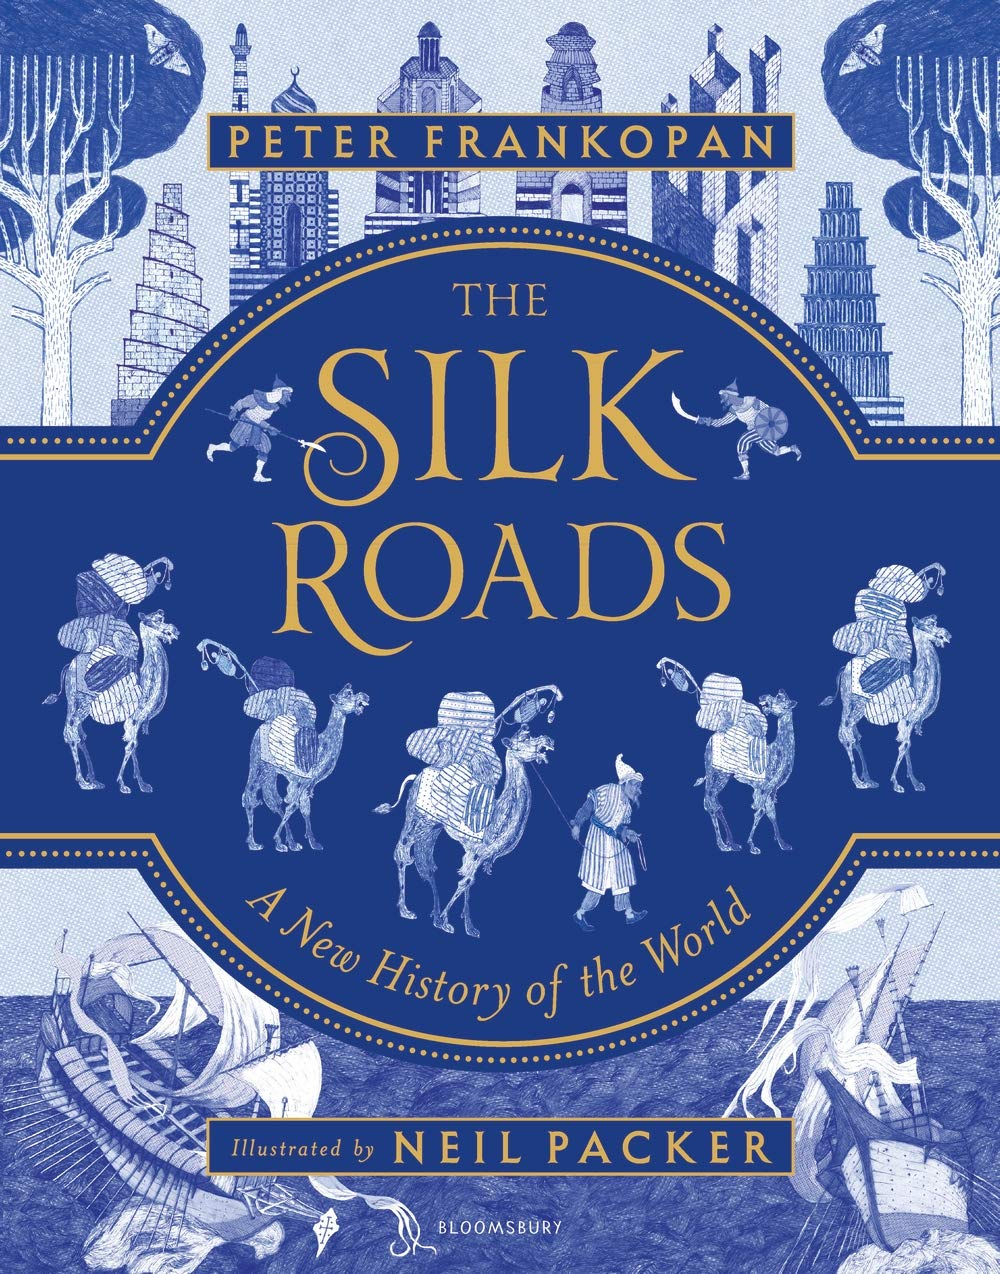 The Silk Roads. Illustrated Edition: A New History of the World